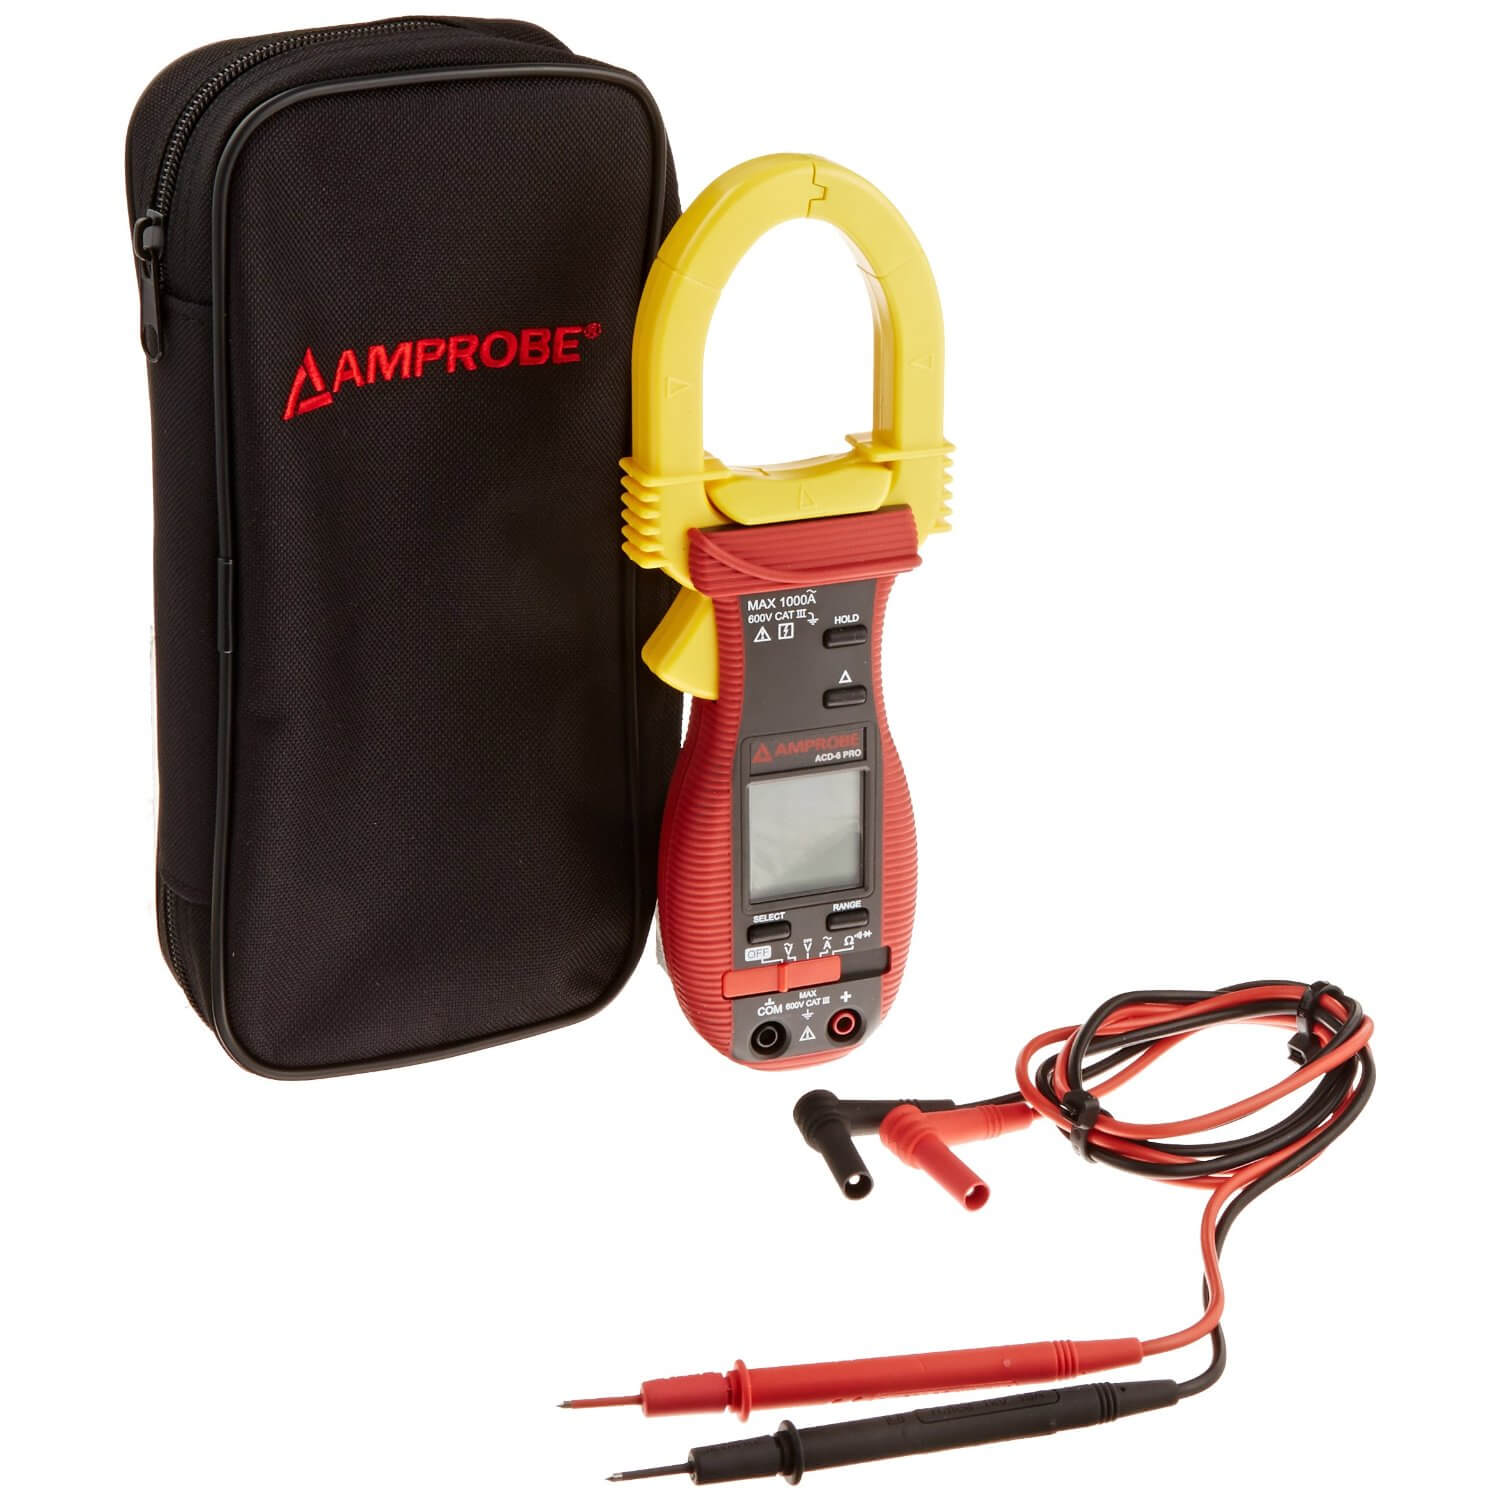 Amprobe ACD-6 TRMS PRO Clamp-on Digital Multimeter 1000A